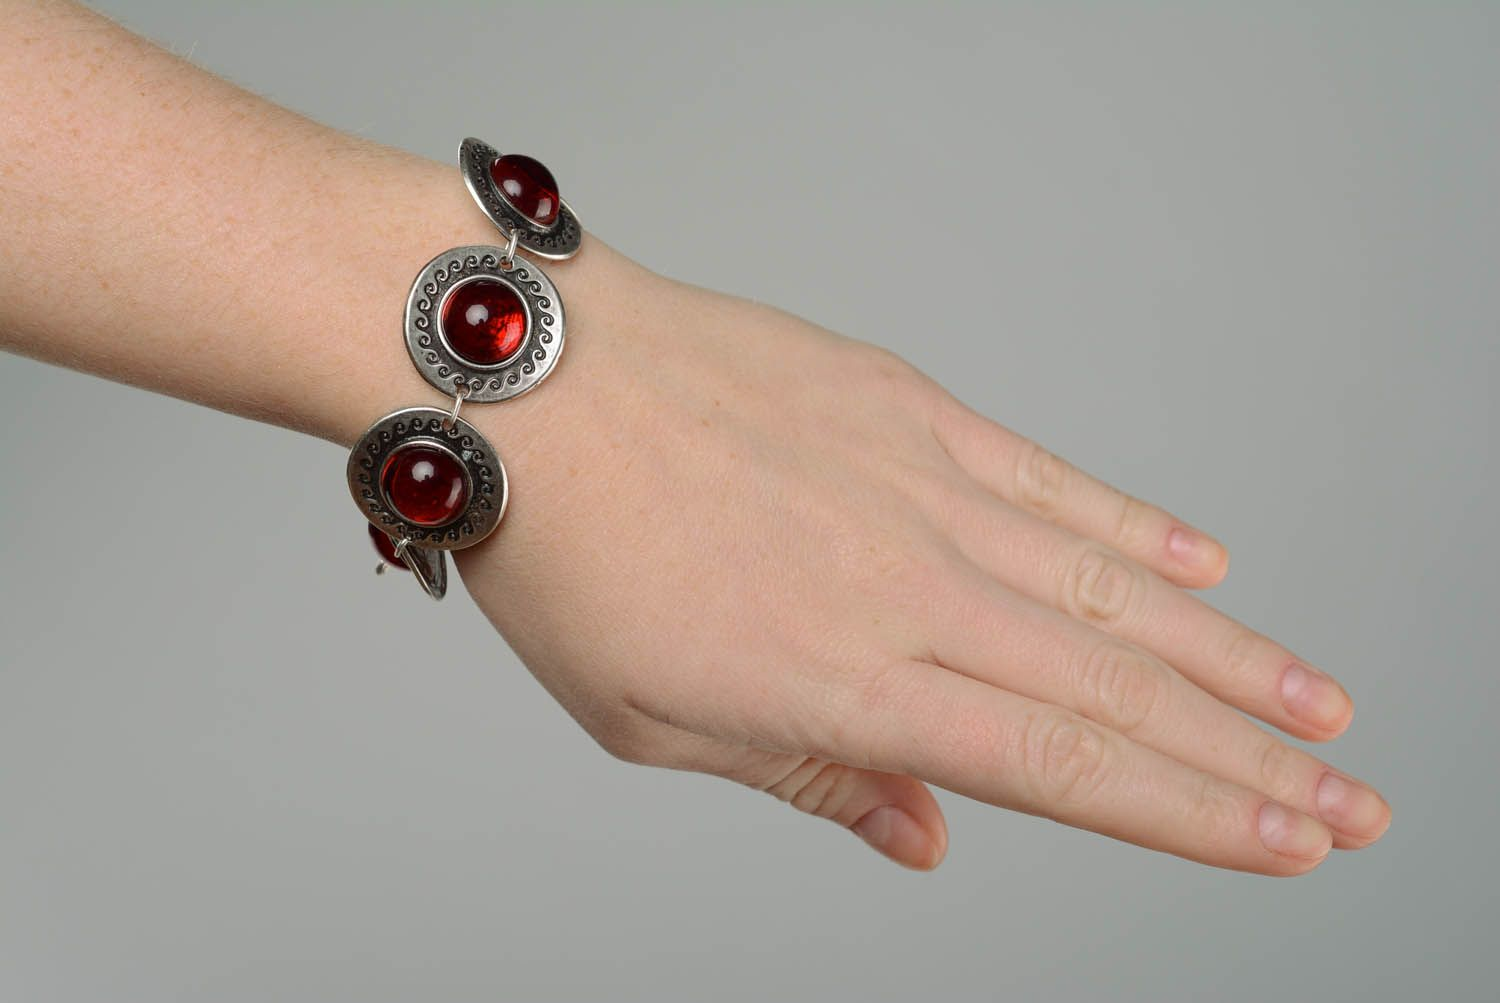 Metal bracelet with red inserts photo 5